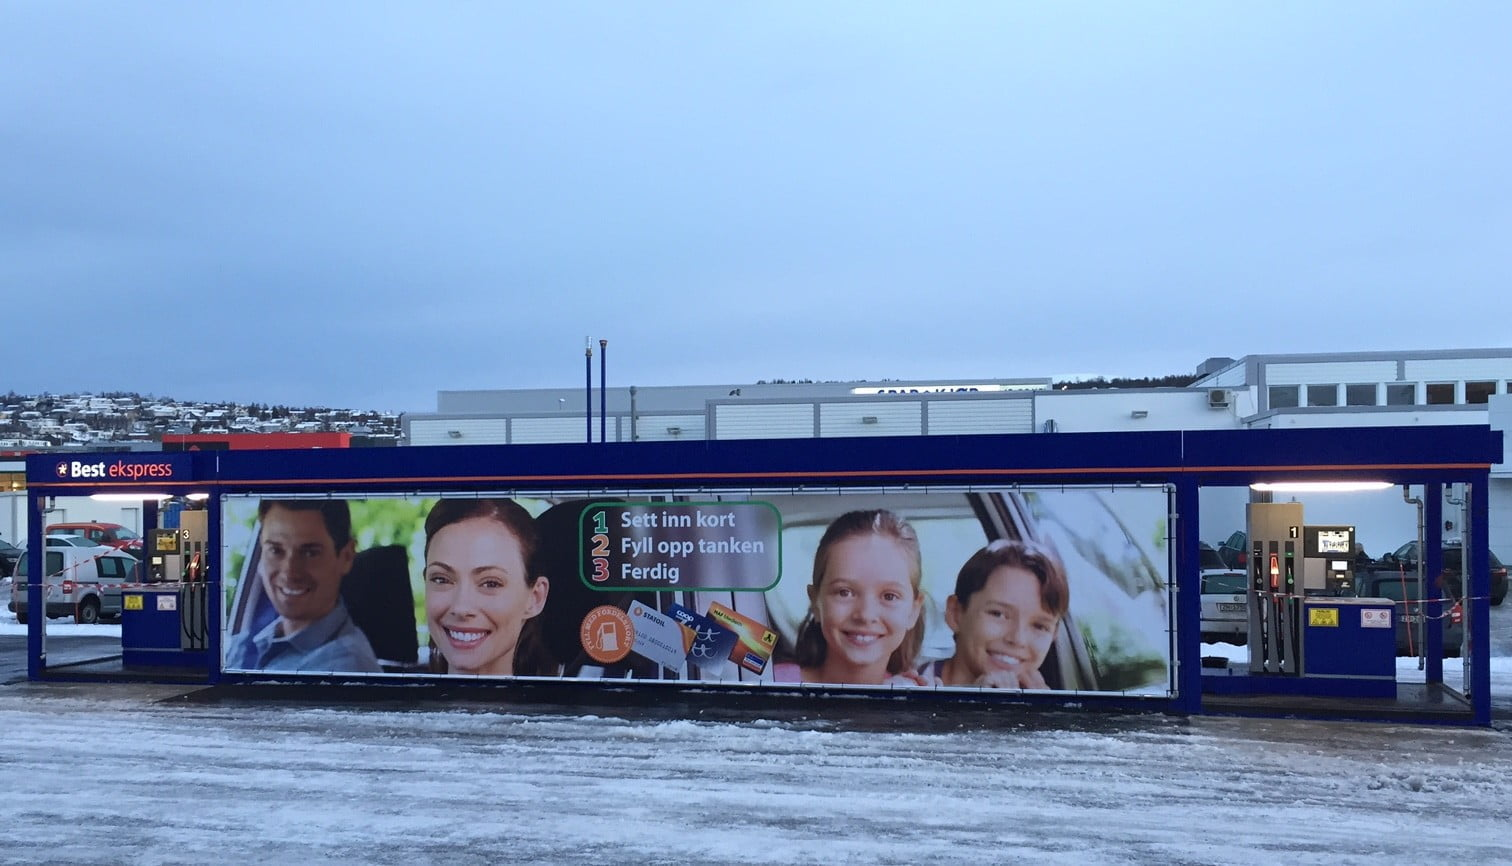 Krampitz gas station container in Tromso city (1)